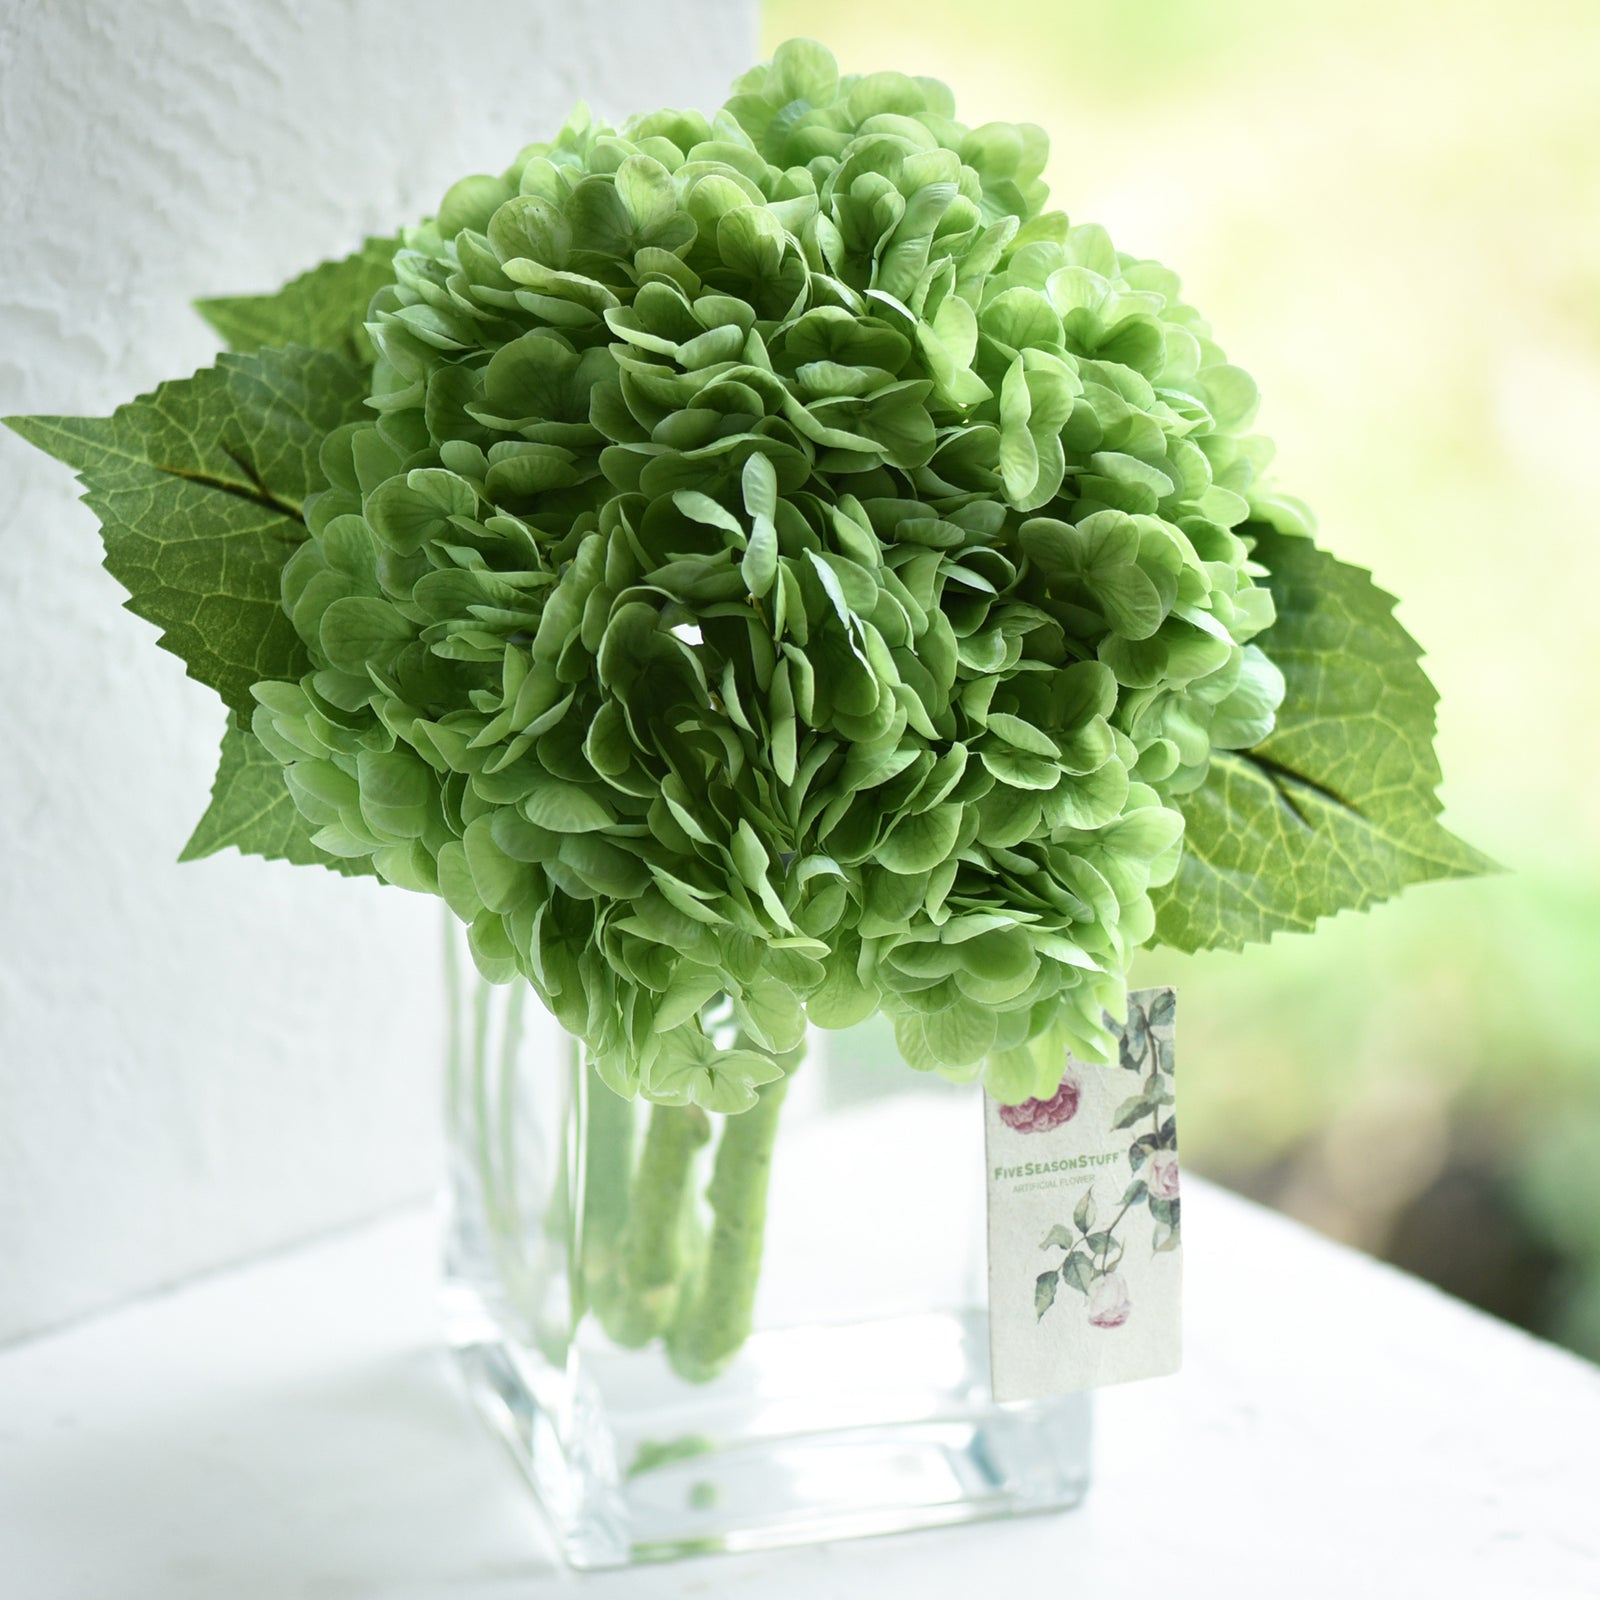 FiveSeasonStuff 2 Stems Real Touch Petals and Leaves Artificial Hydrangea Flowers Long Stem Floral Arrangement | for Wedding Bridal Party Home Décor DIY Floral Decoration (Green)